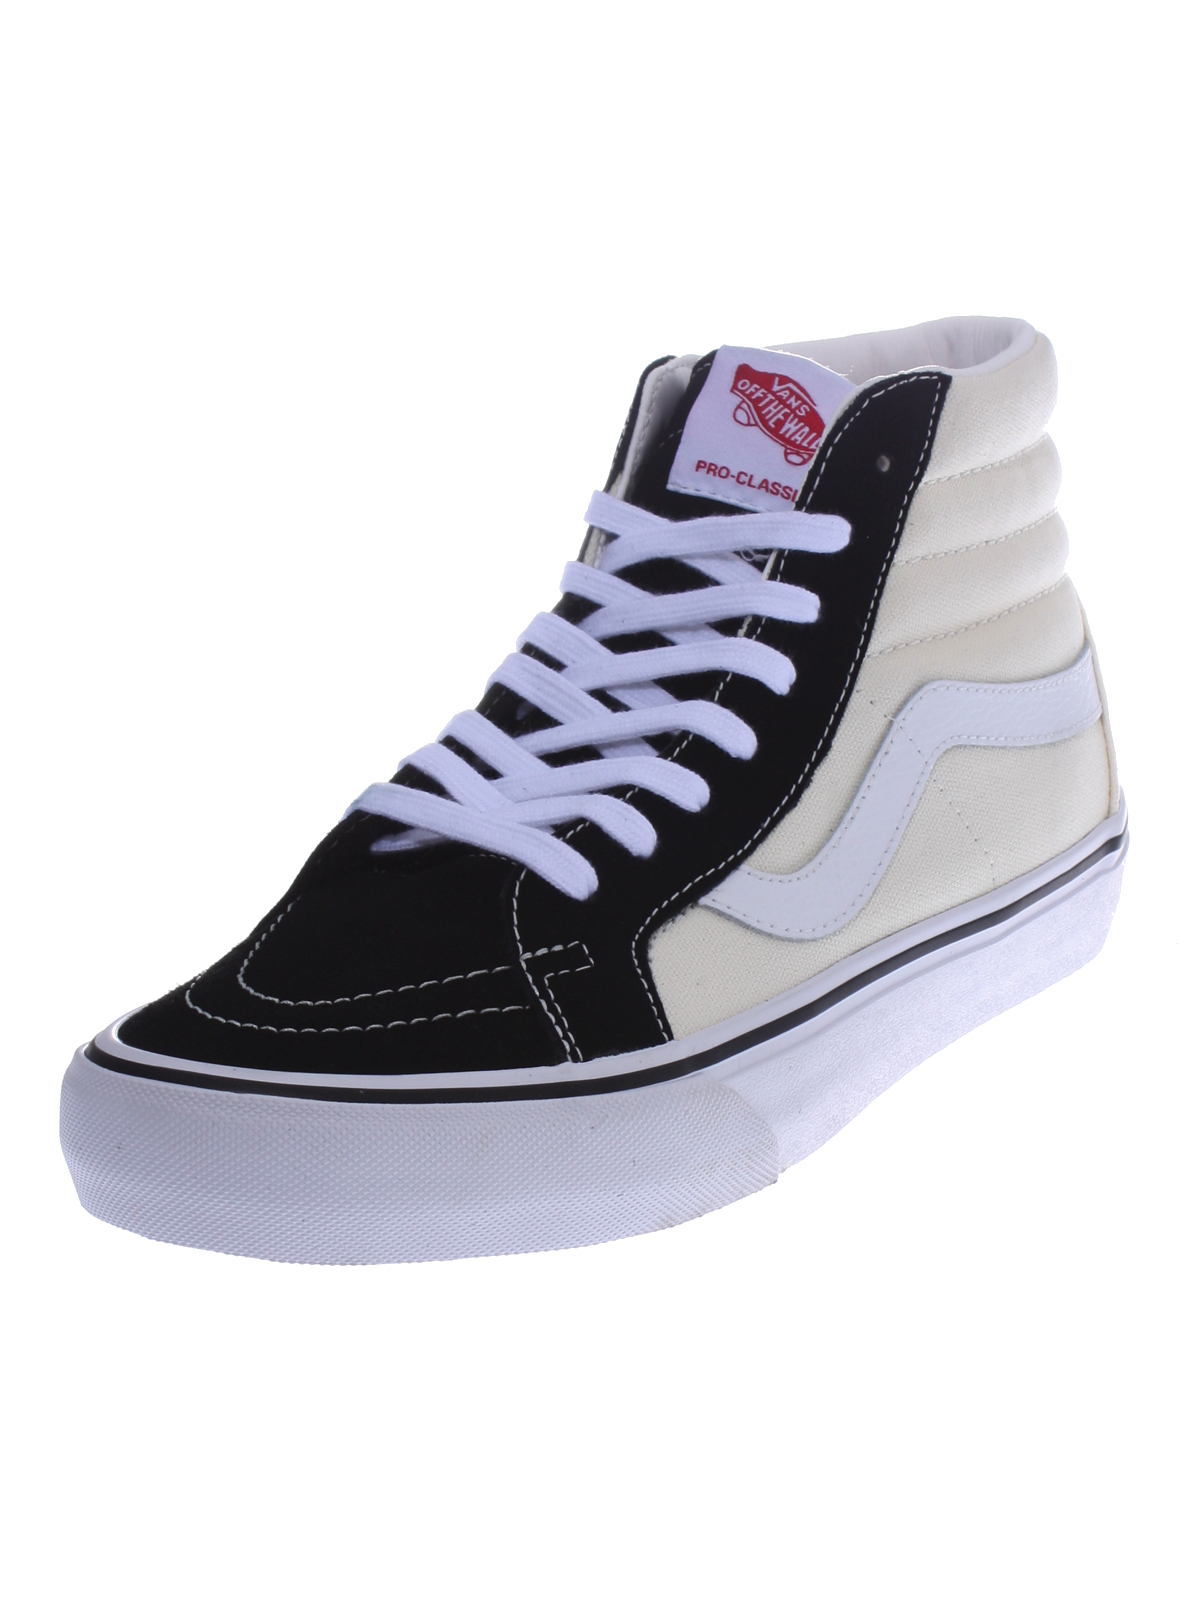 unisex vans sk8 hi pro 50th leder beige schwarz vvhgj6g. Black Bedroom Furniture Sets. Home Design Ideas